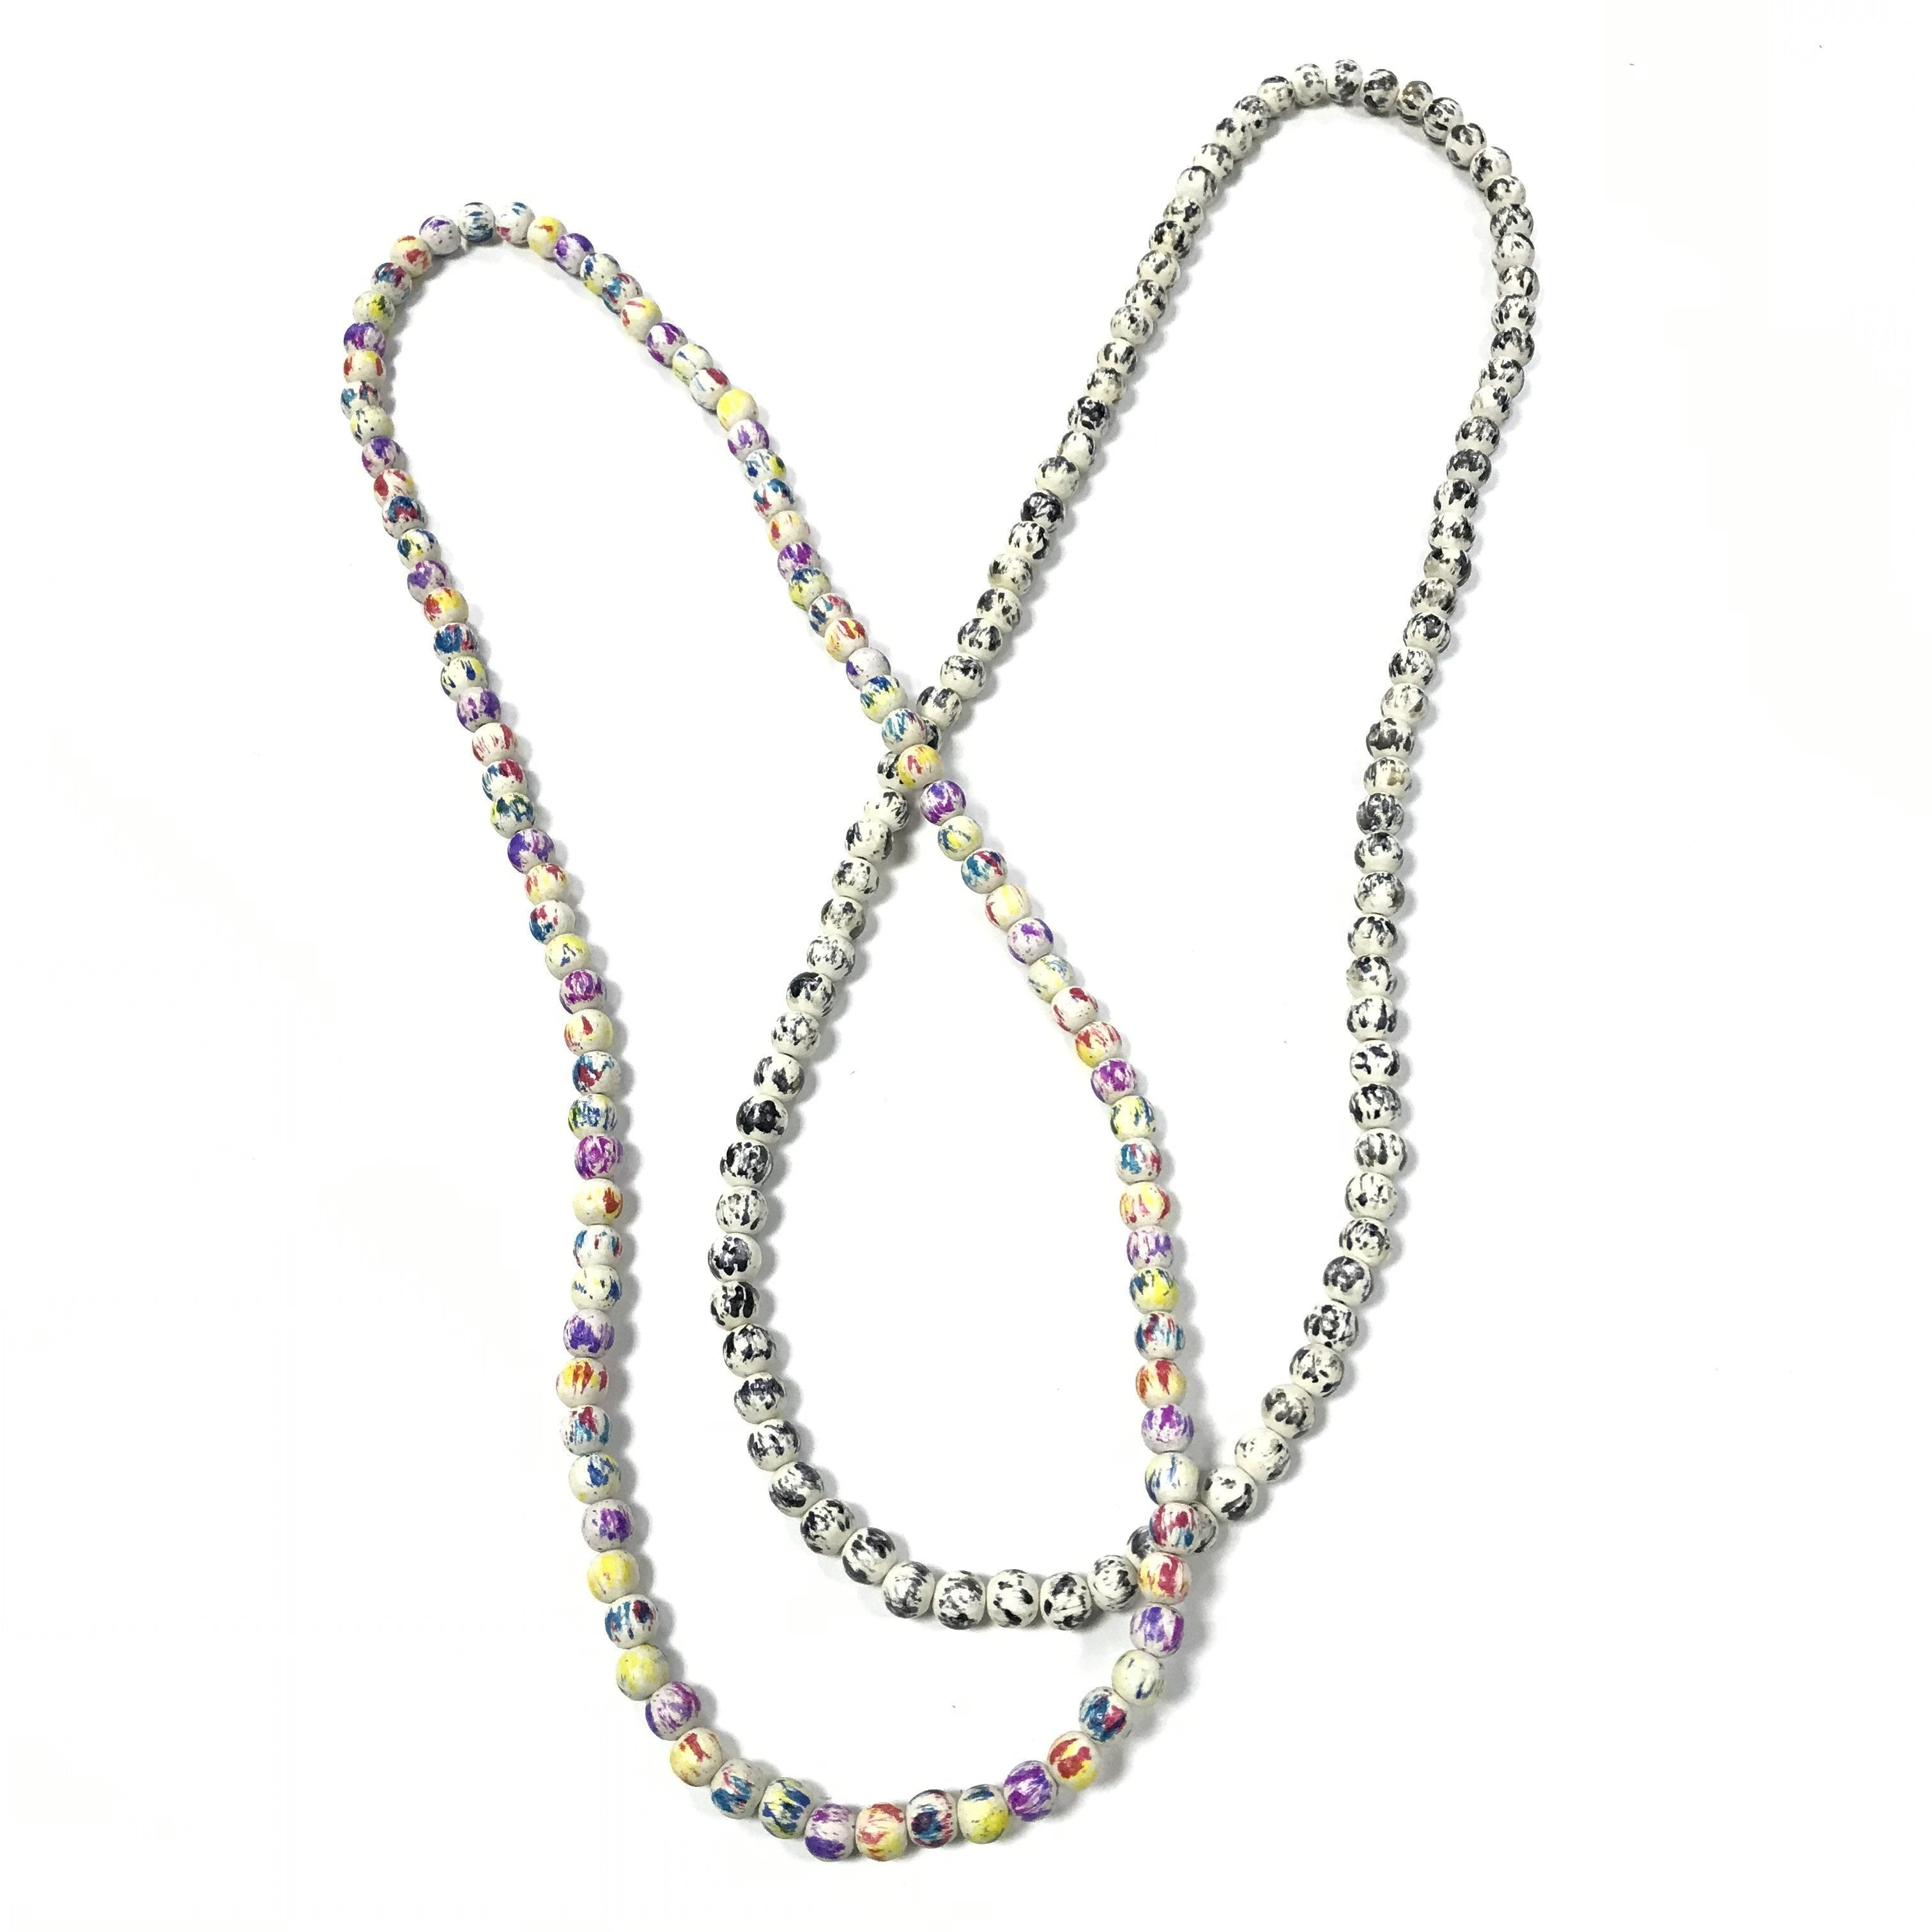 Marley - Long Beaded Necklace